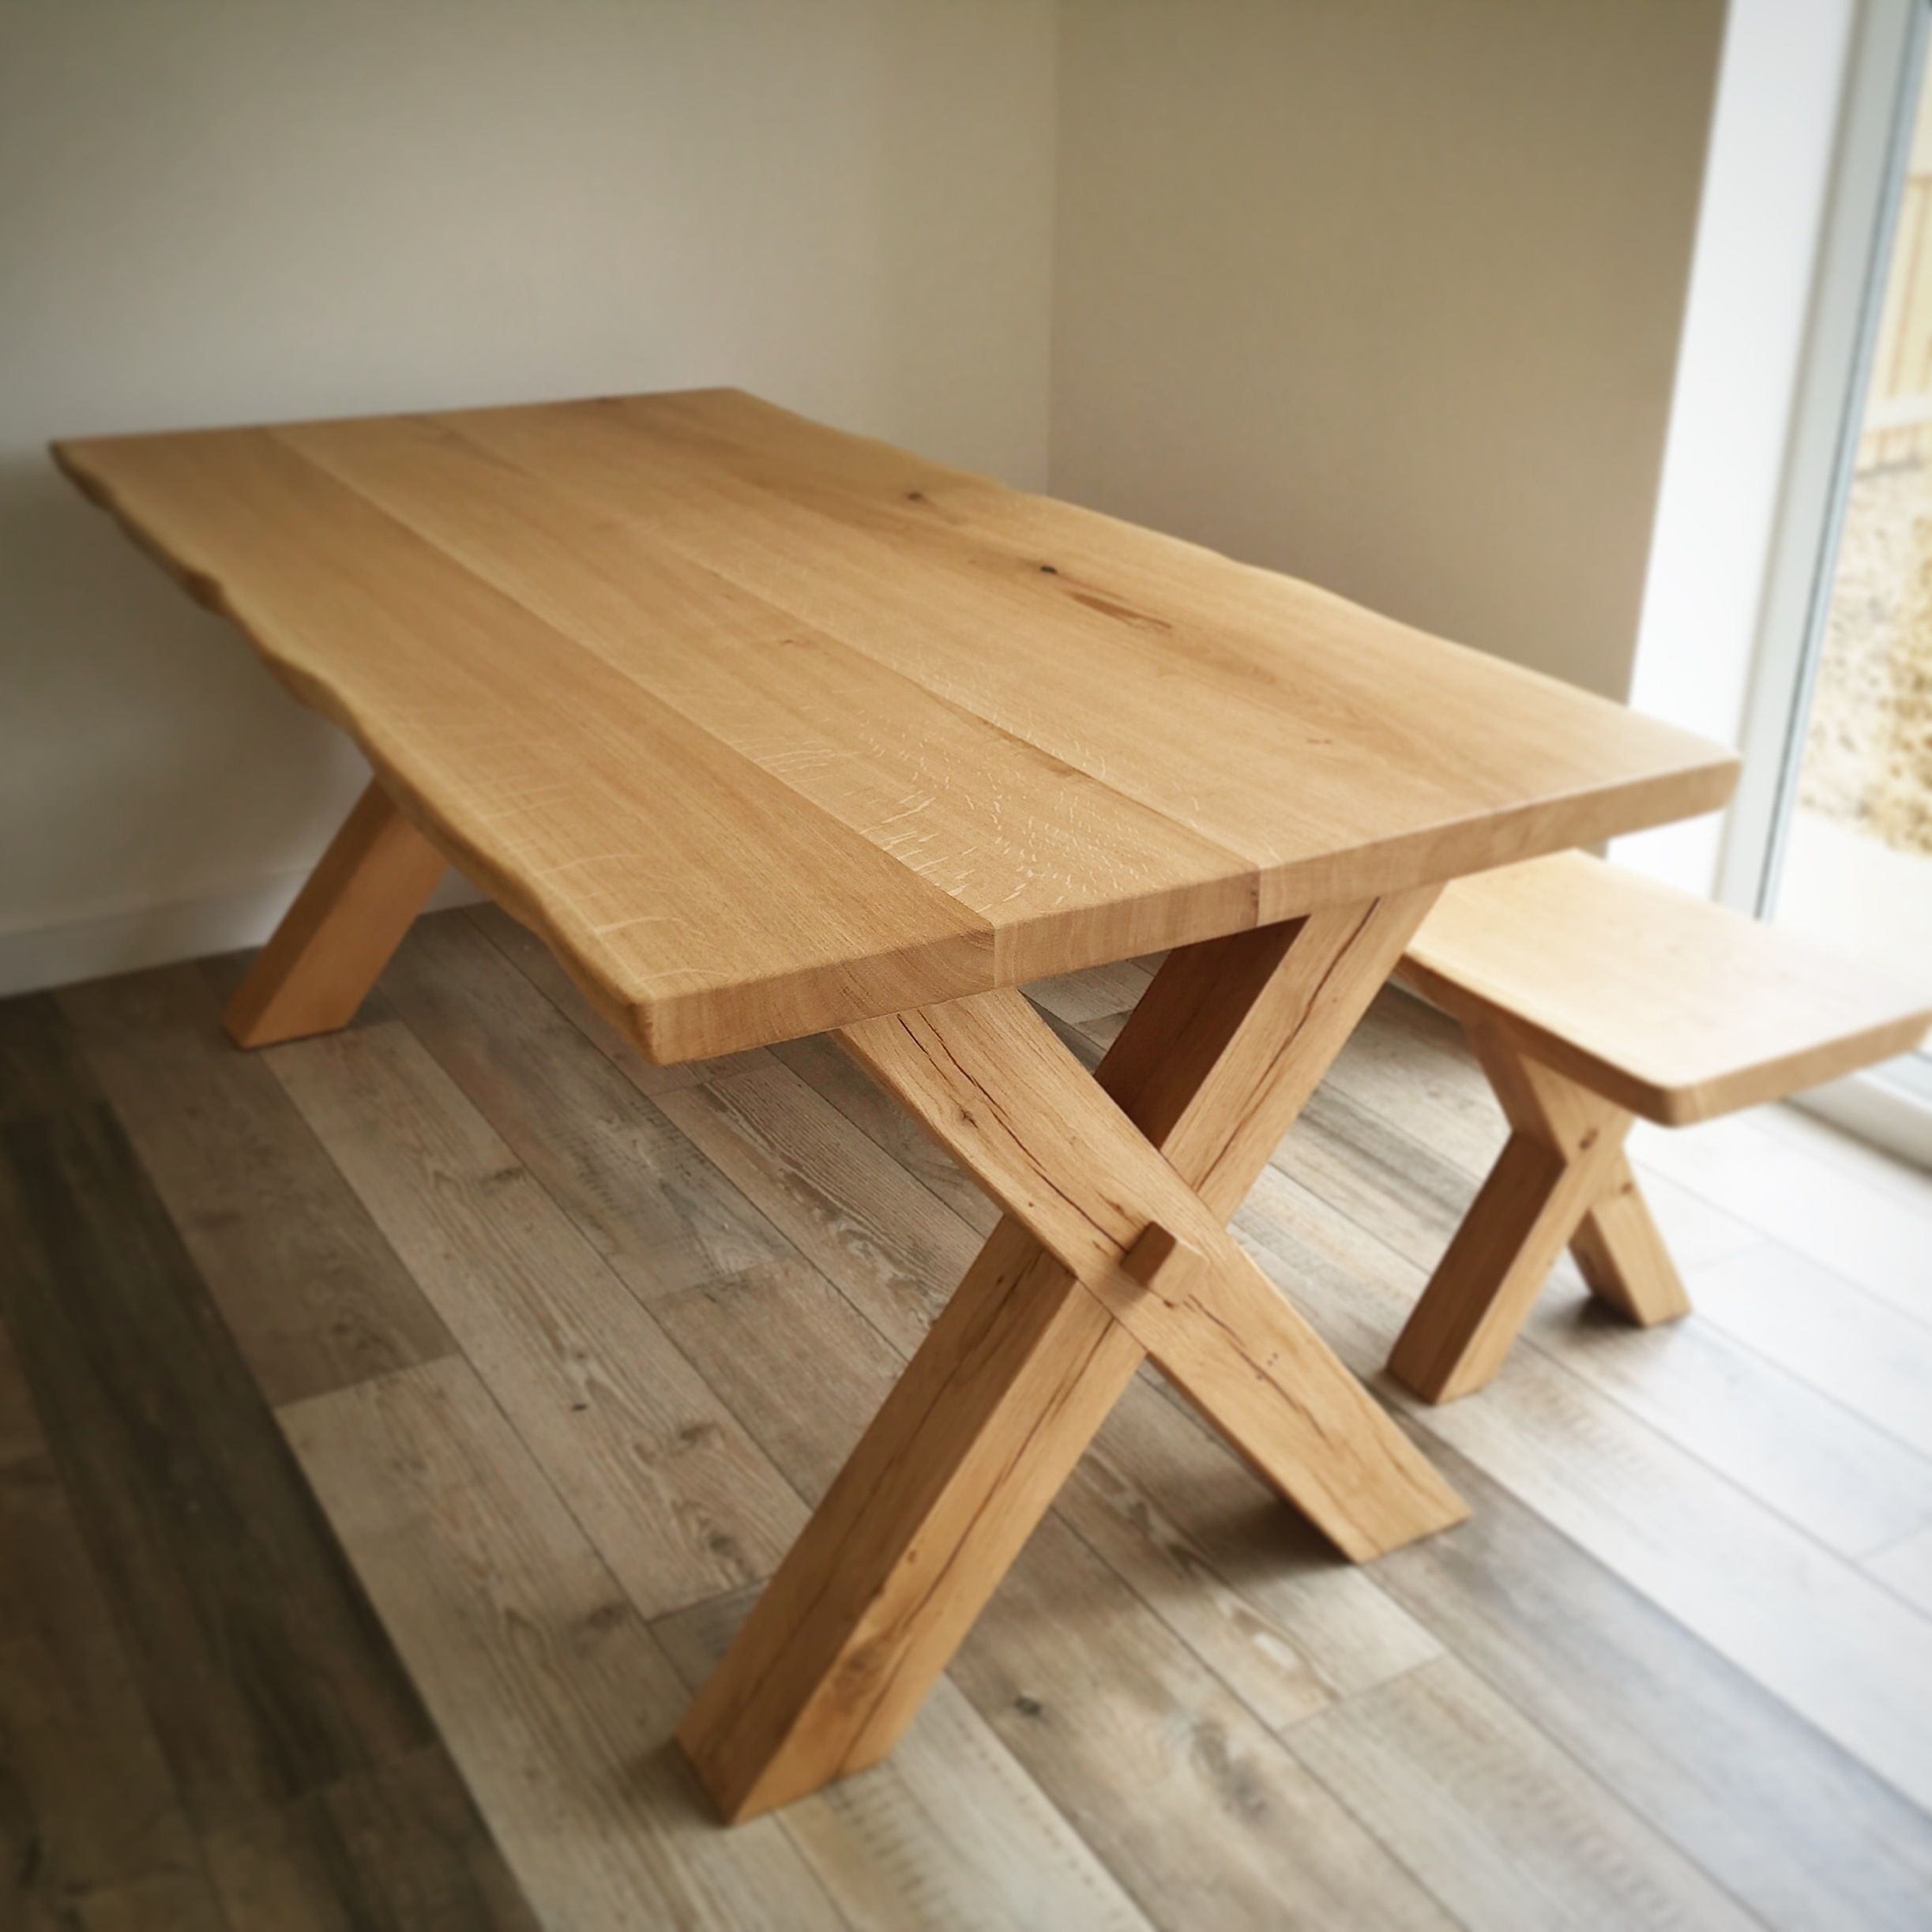 X Leg Solid Oak Dining Table Crafted With Love In The Uk We Make Each To Order Is From Finest Quality